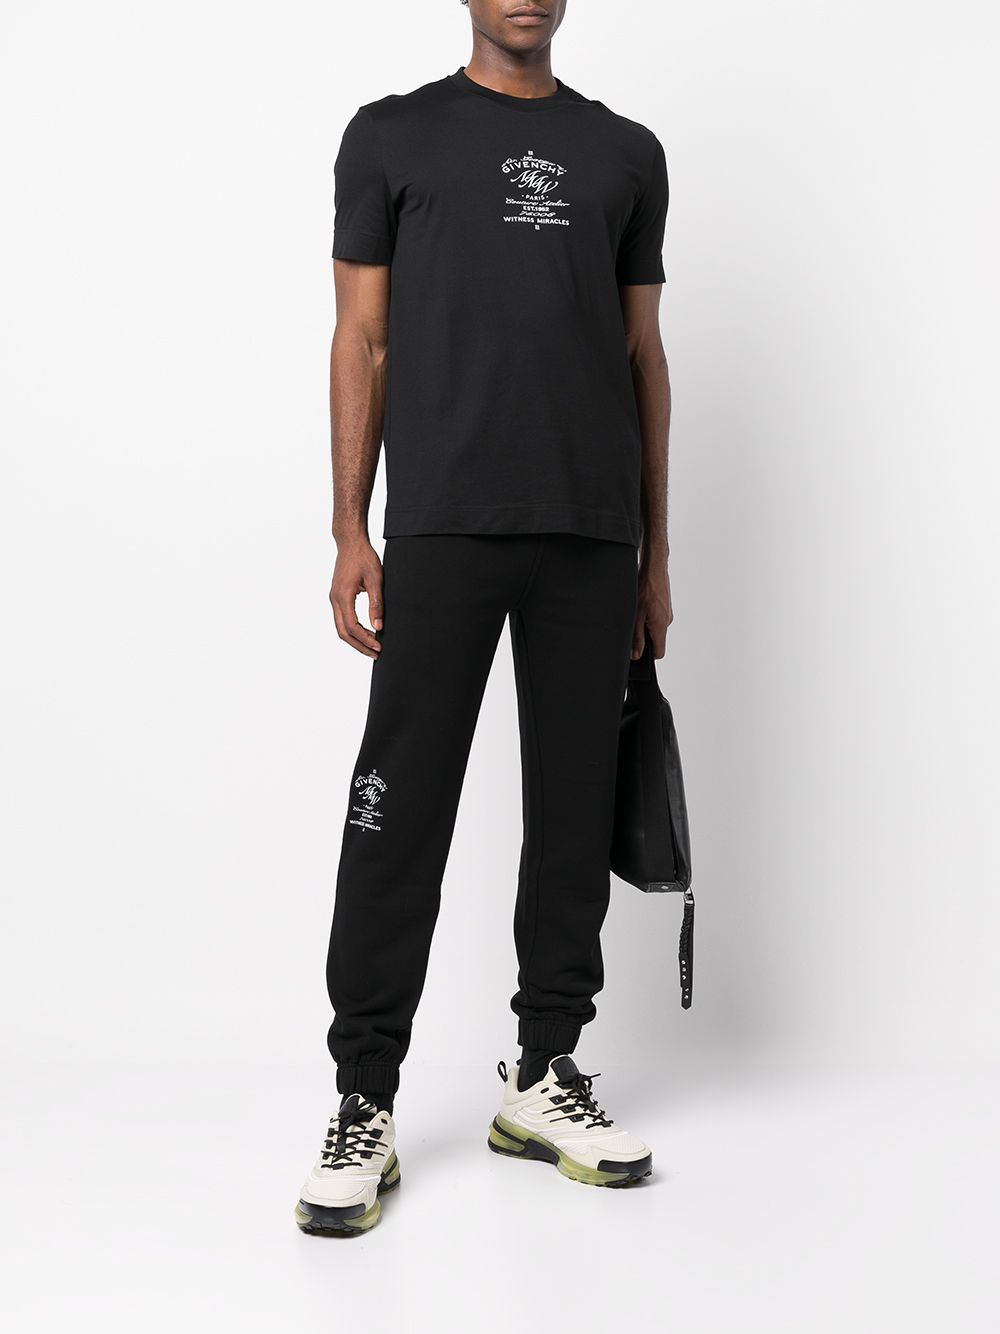 Black cotton track pants featuring Givenchy logo print to the side GIVENCHY |  | BM50Y63Y6V001